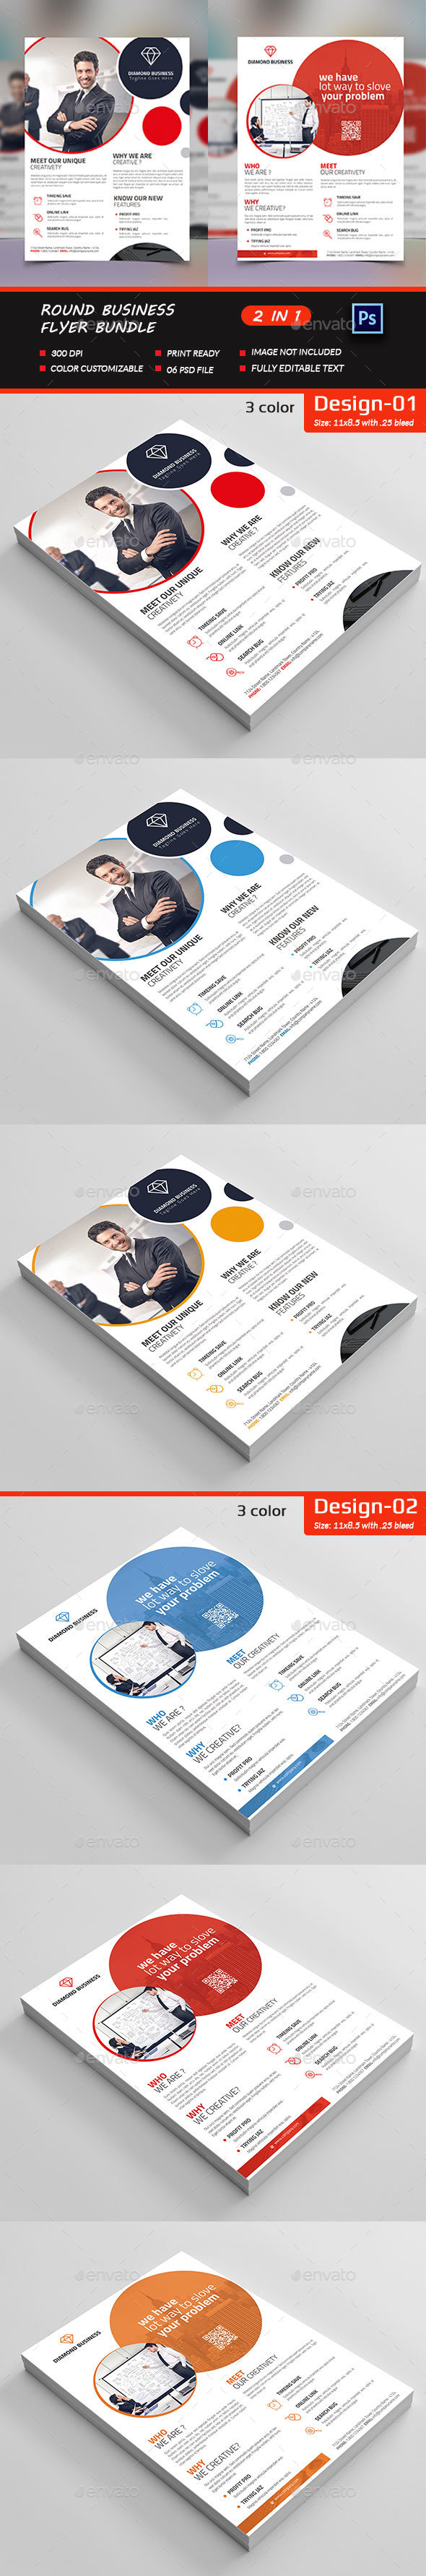 Round Business Flyer Bundle - Corporate Flyers